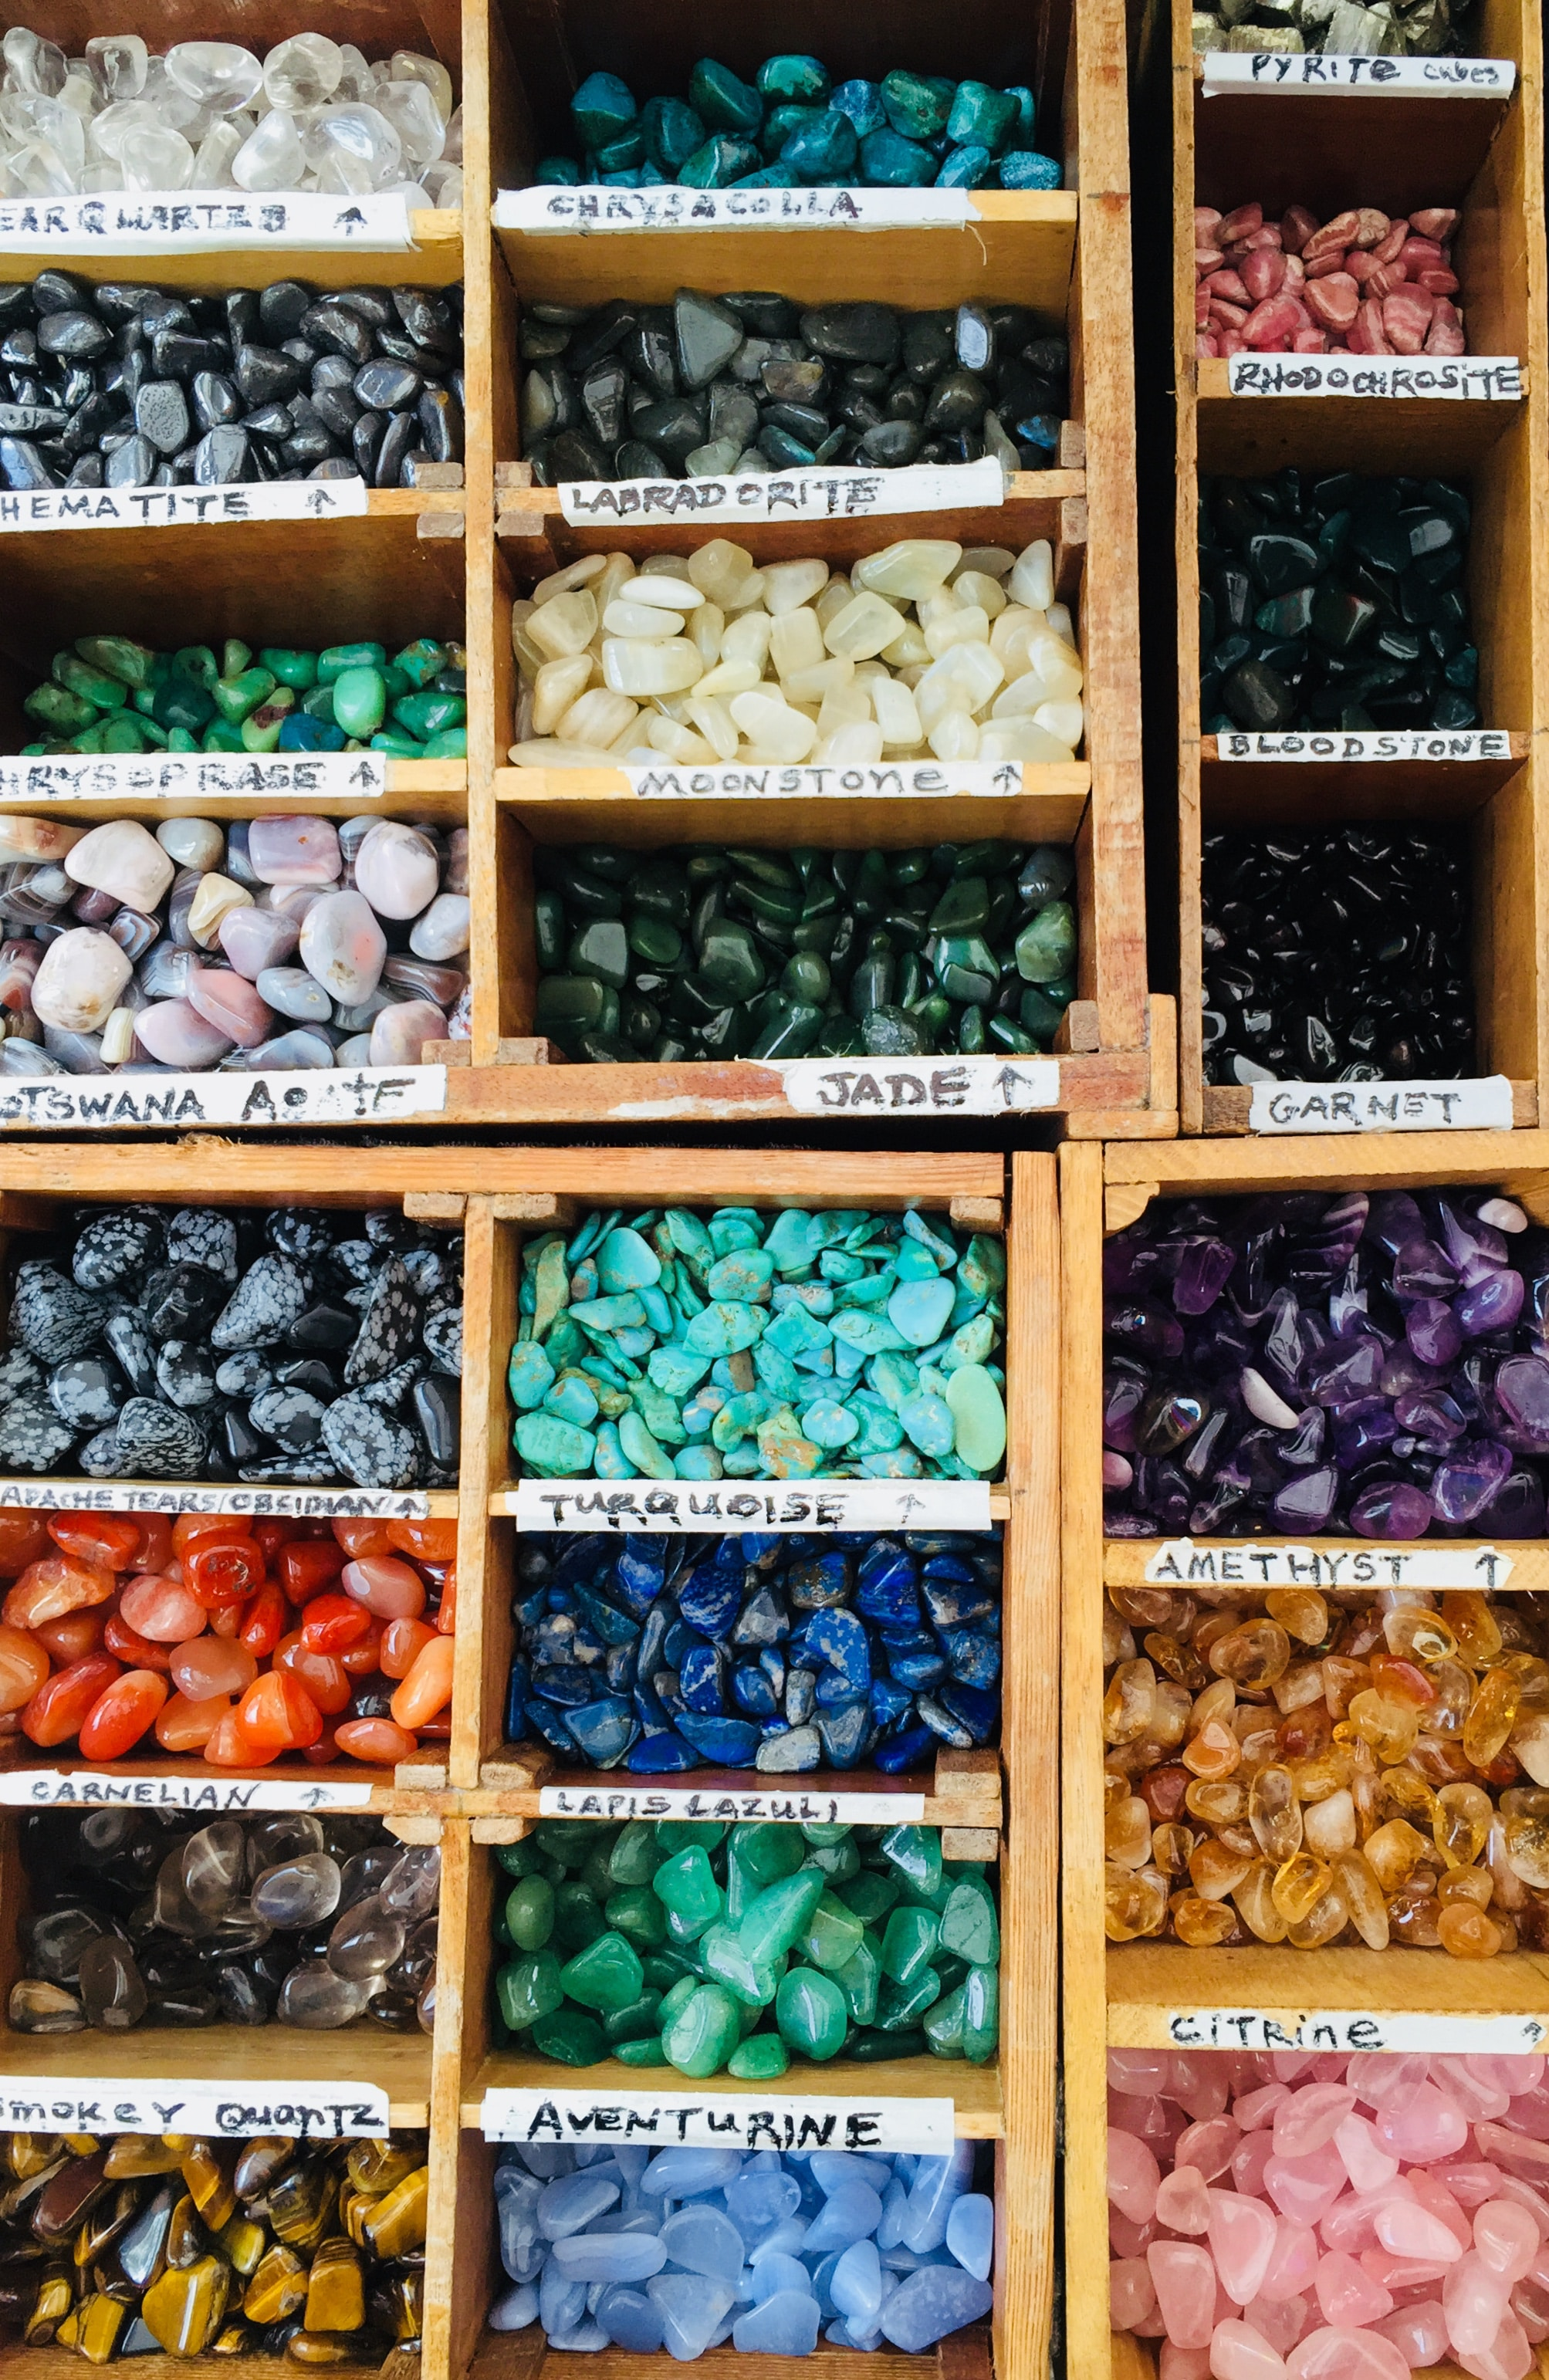 - 70-80% of colored gemstones come from artisanal and small-scale mining.Image: Emily Karakis on Unsplash